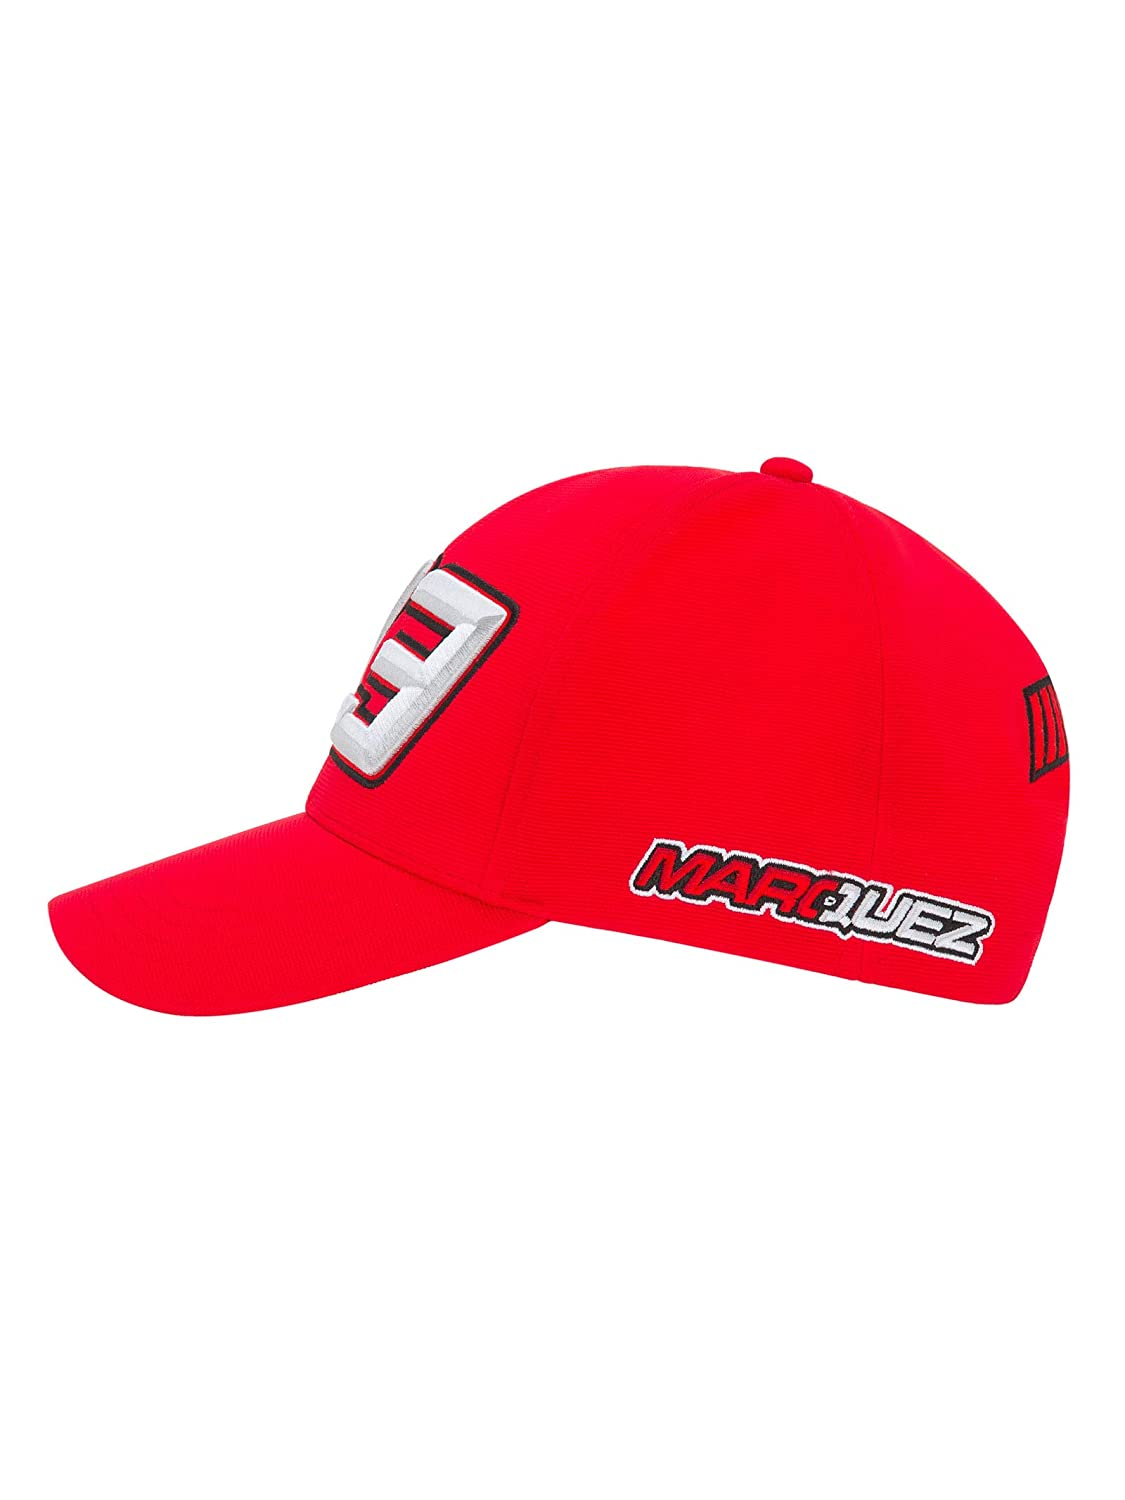 BCHCOSC MGMM9LSPBC Outdoor Sandwich Baseball Caps Hats /& Caps